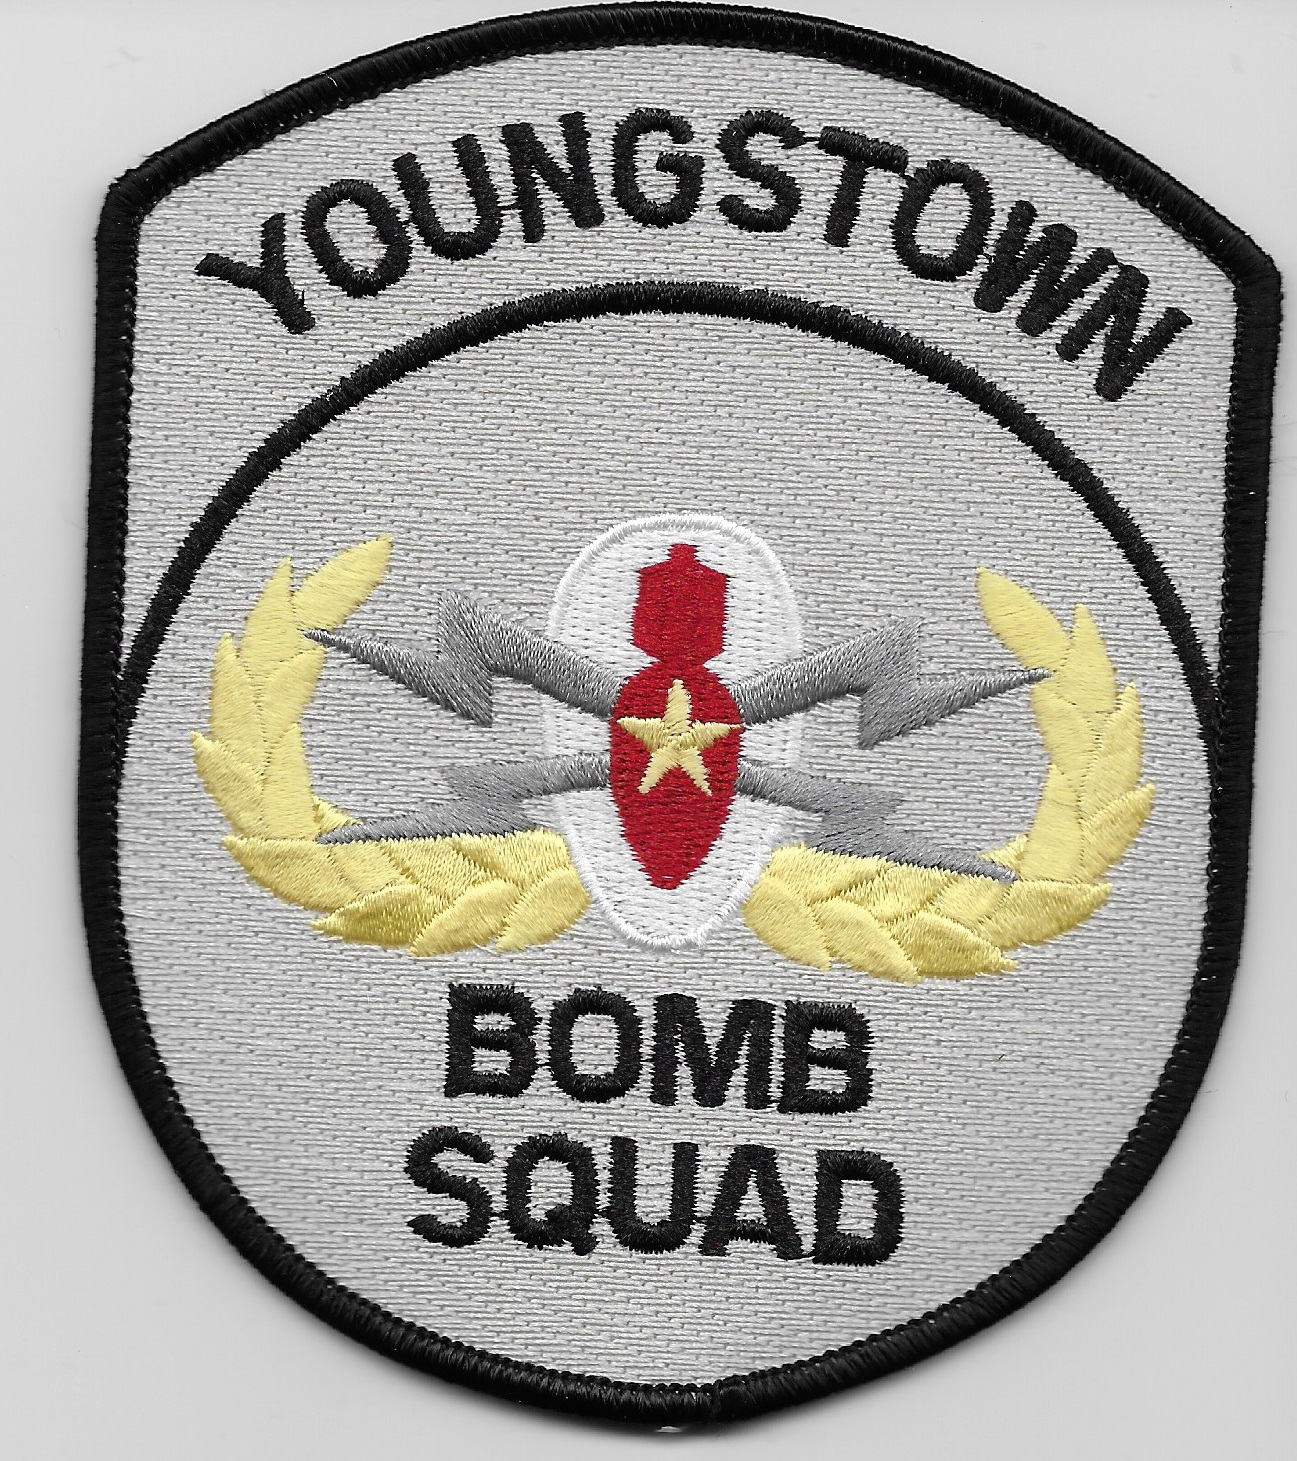 Youngtown Police EOD OH